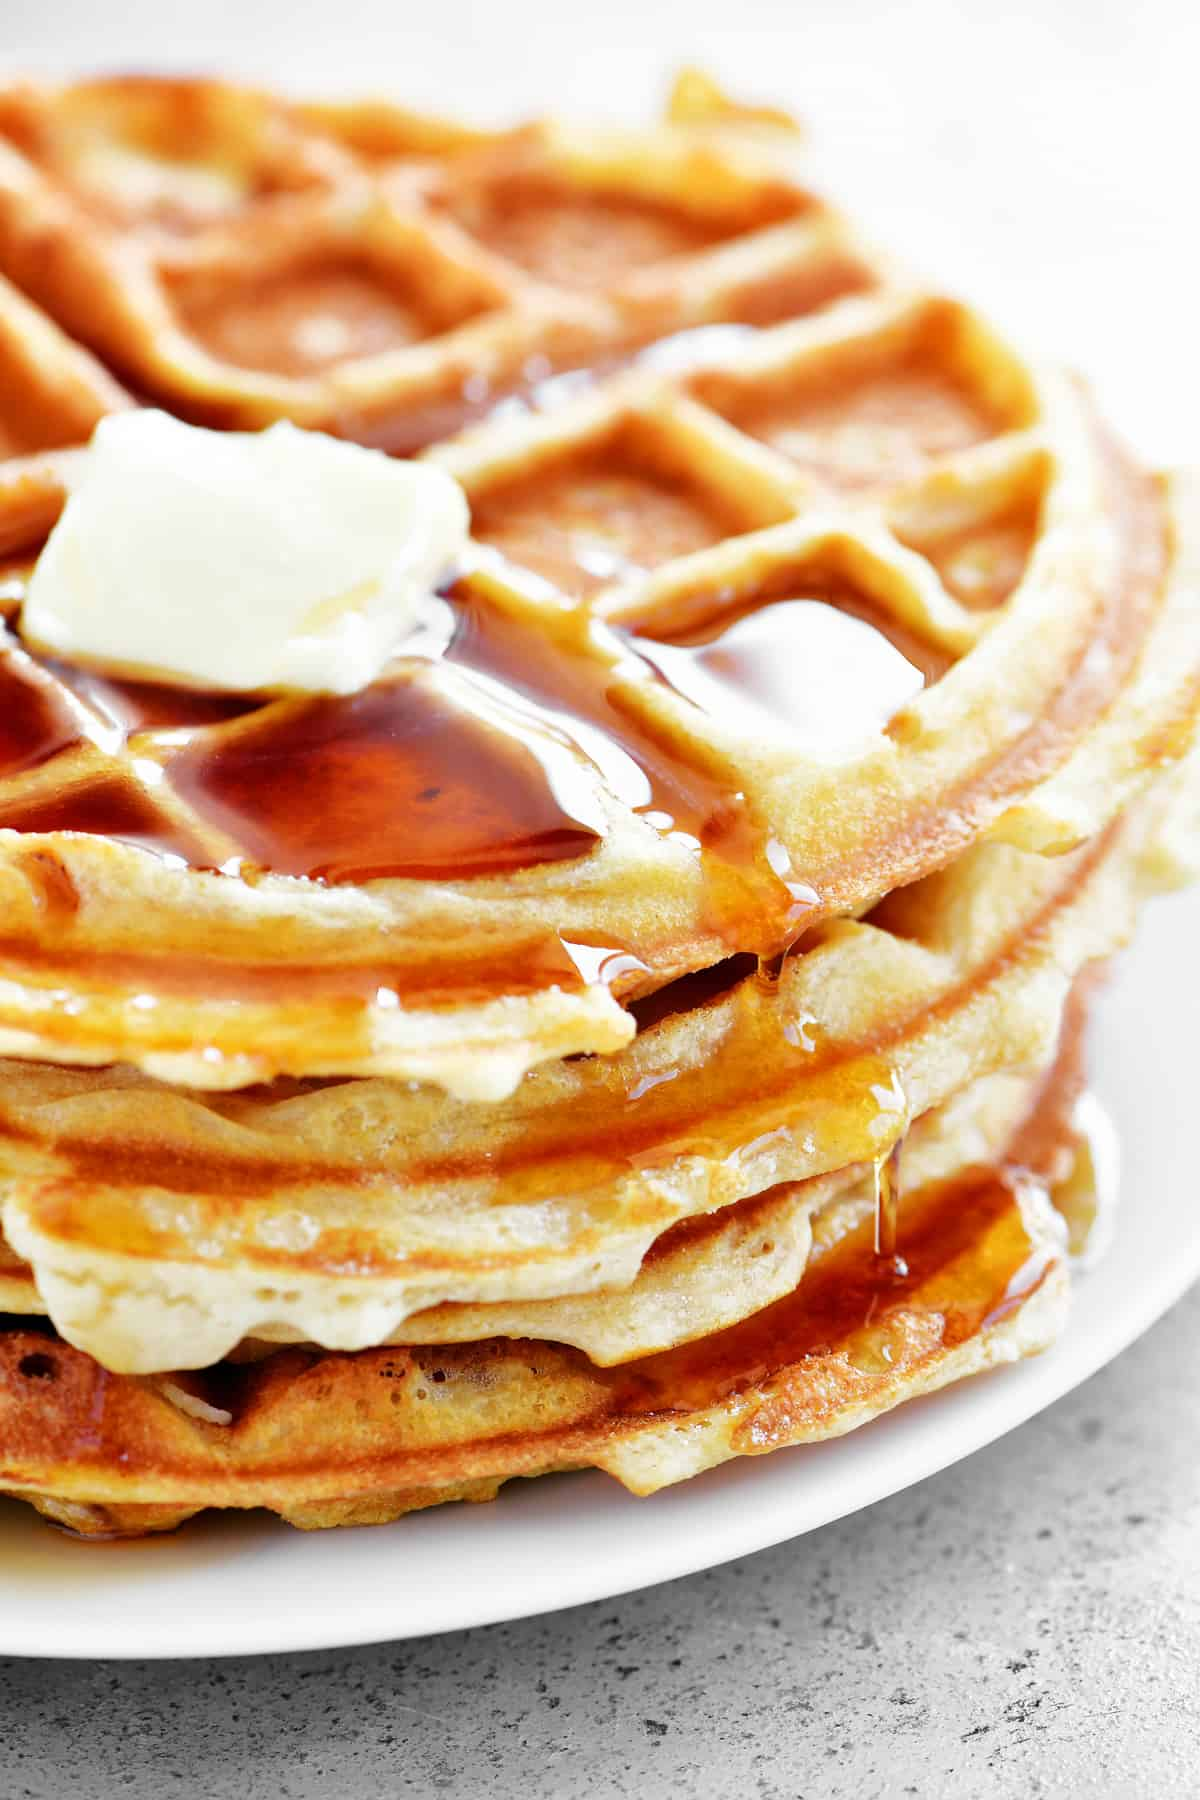 butter and syrup on a stack of waffles